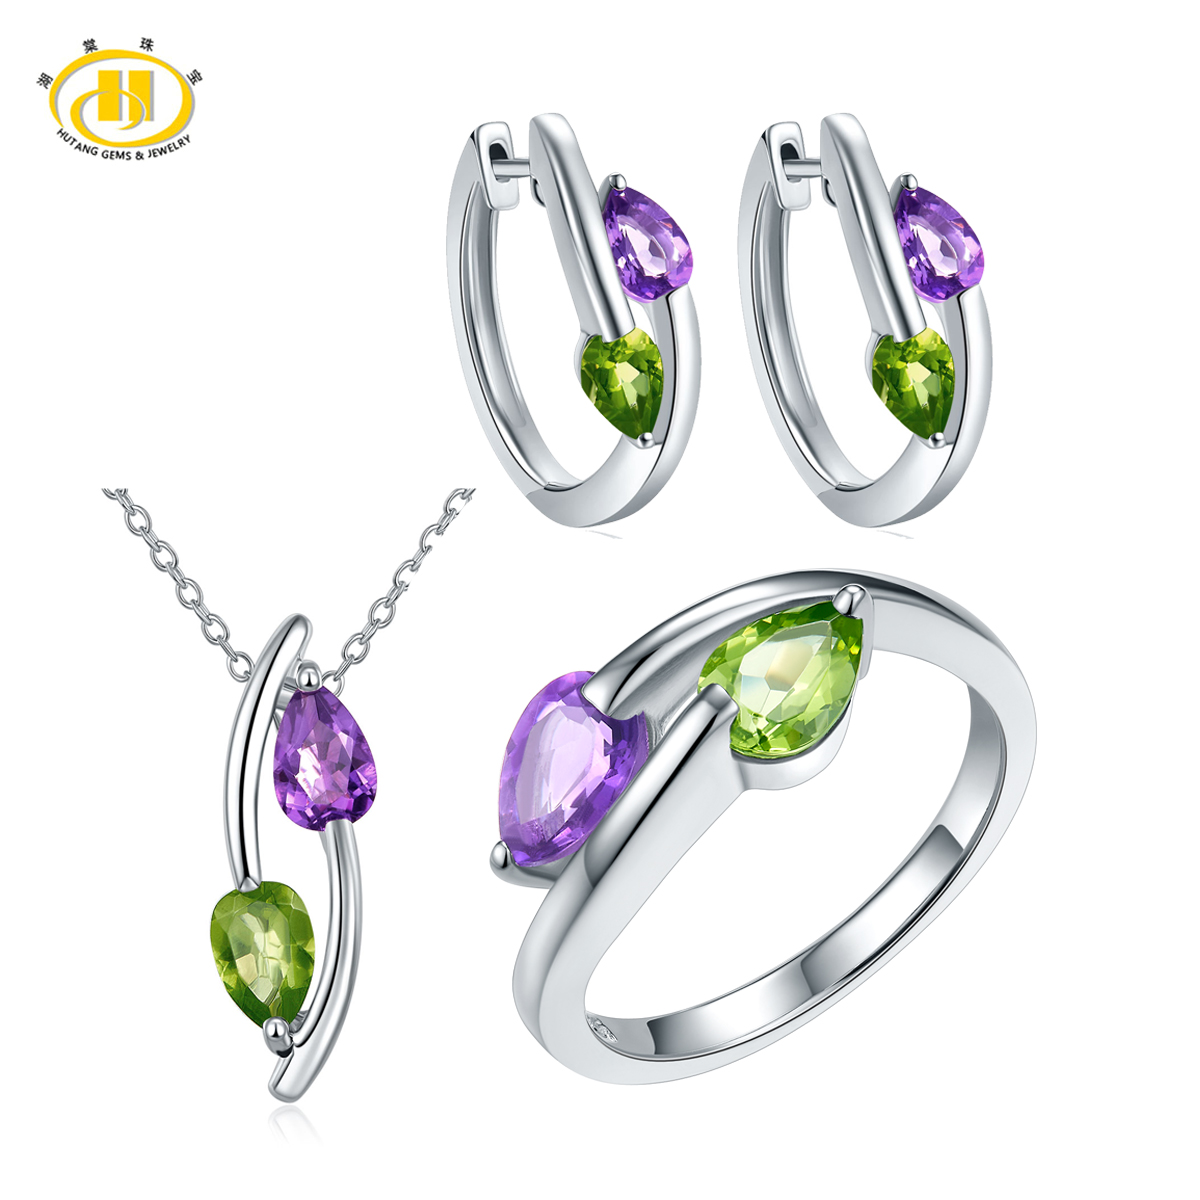 Hutang Natural Peridot & Amethyst Jewelry Sets for Women